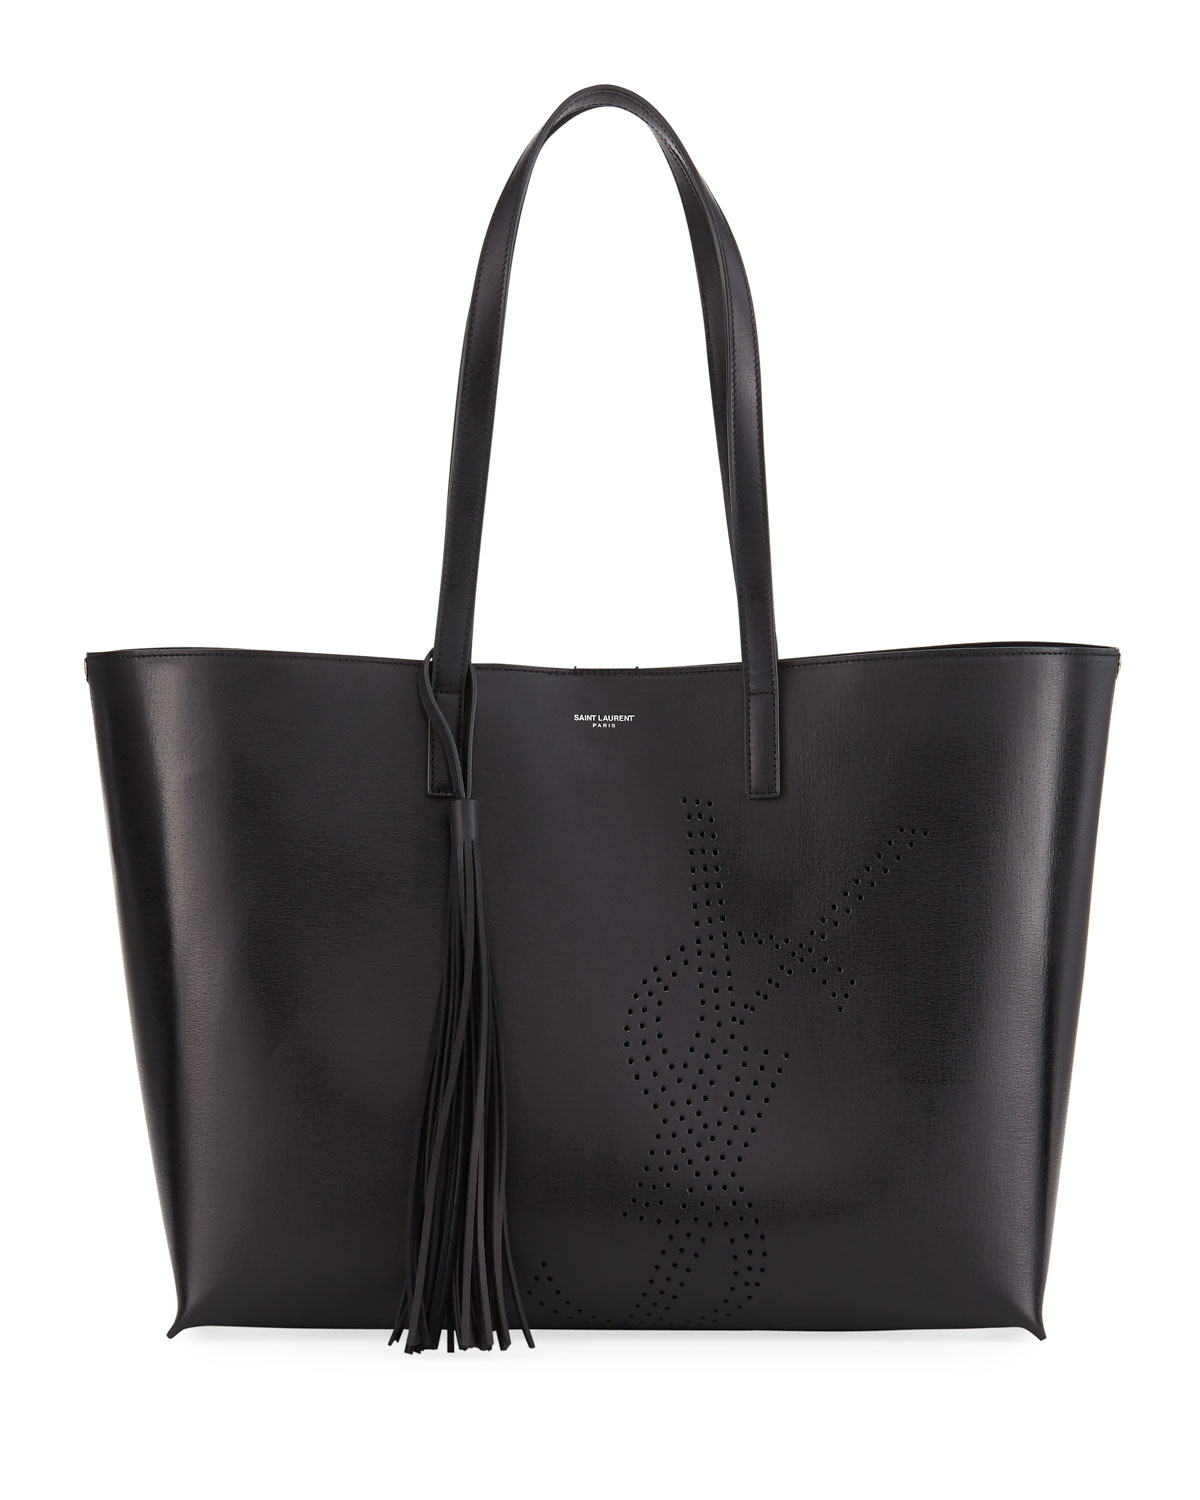 eb45f1459 Saint Laurent Large East-West Perforated Leather Shopping Tote Bag ...